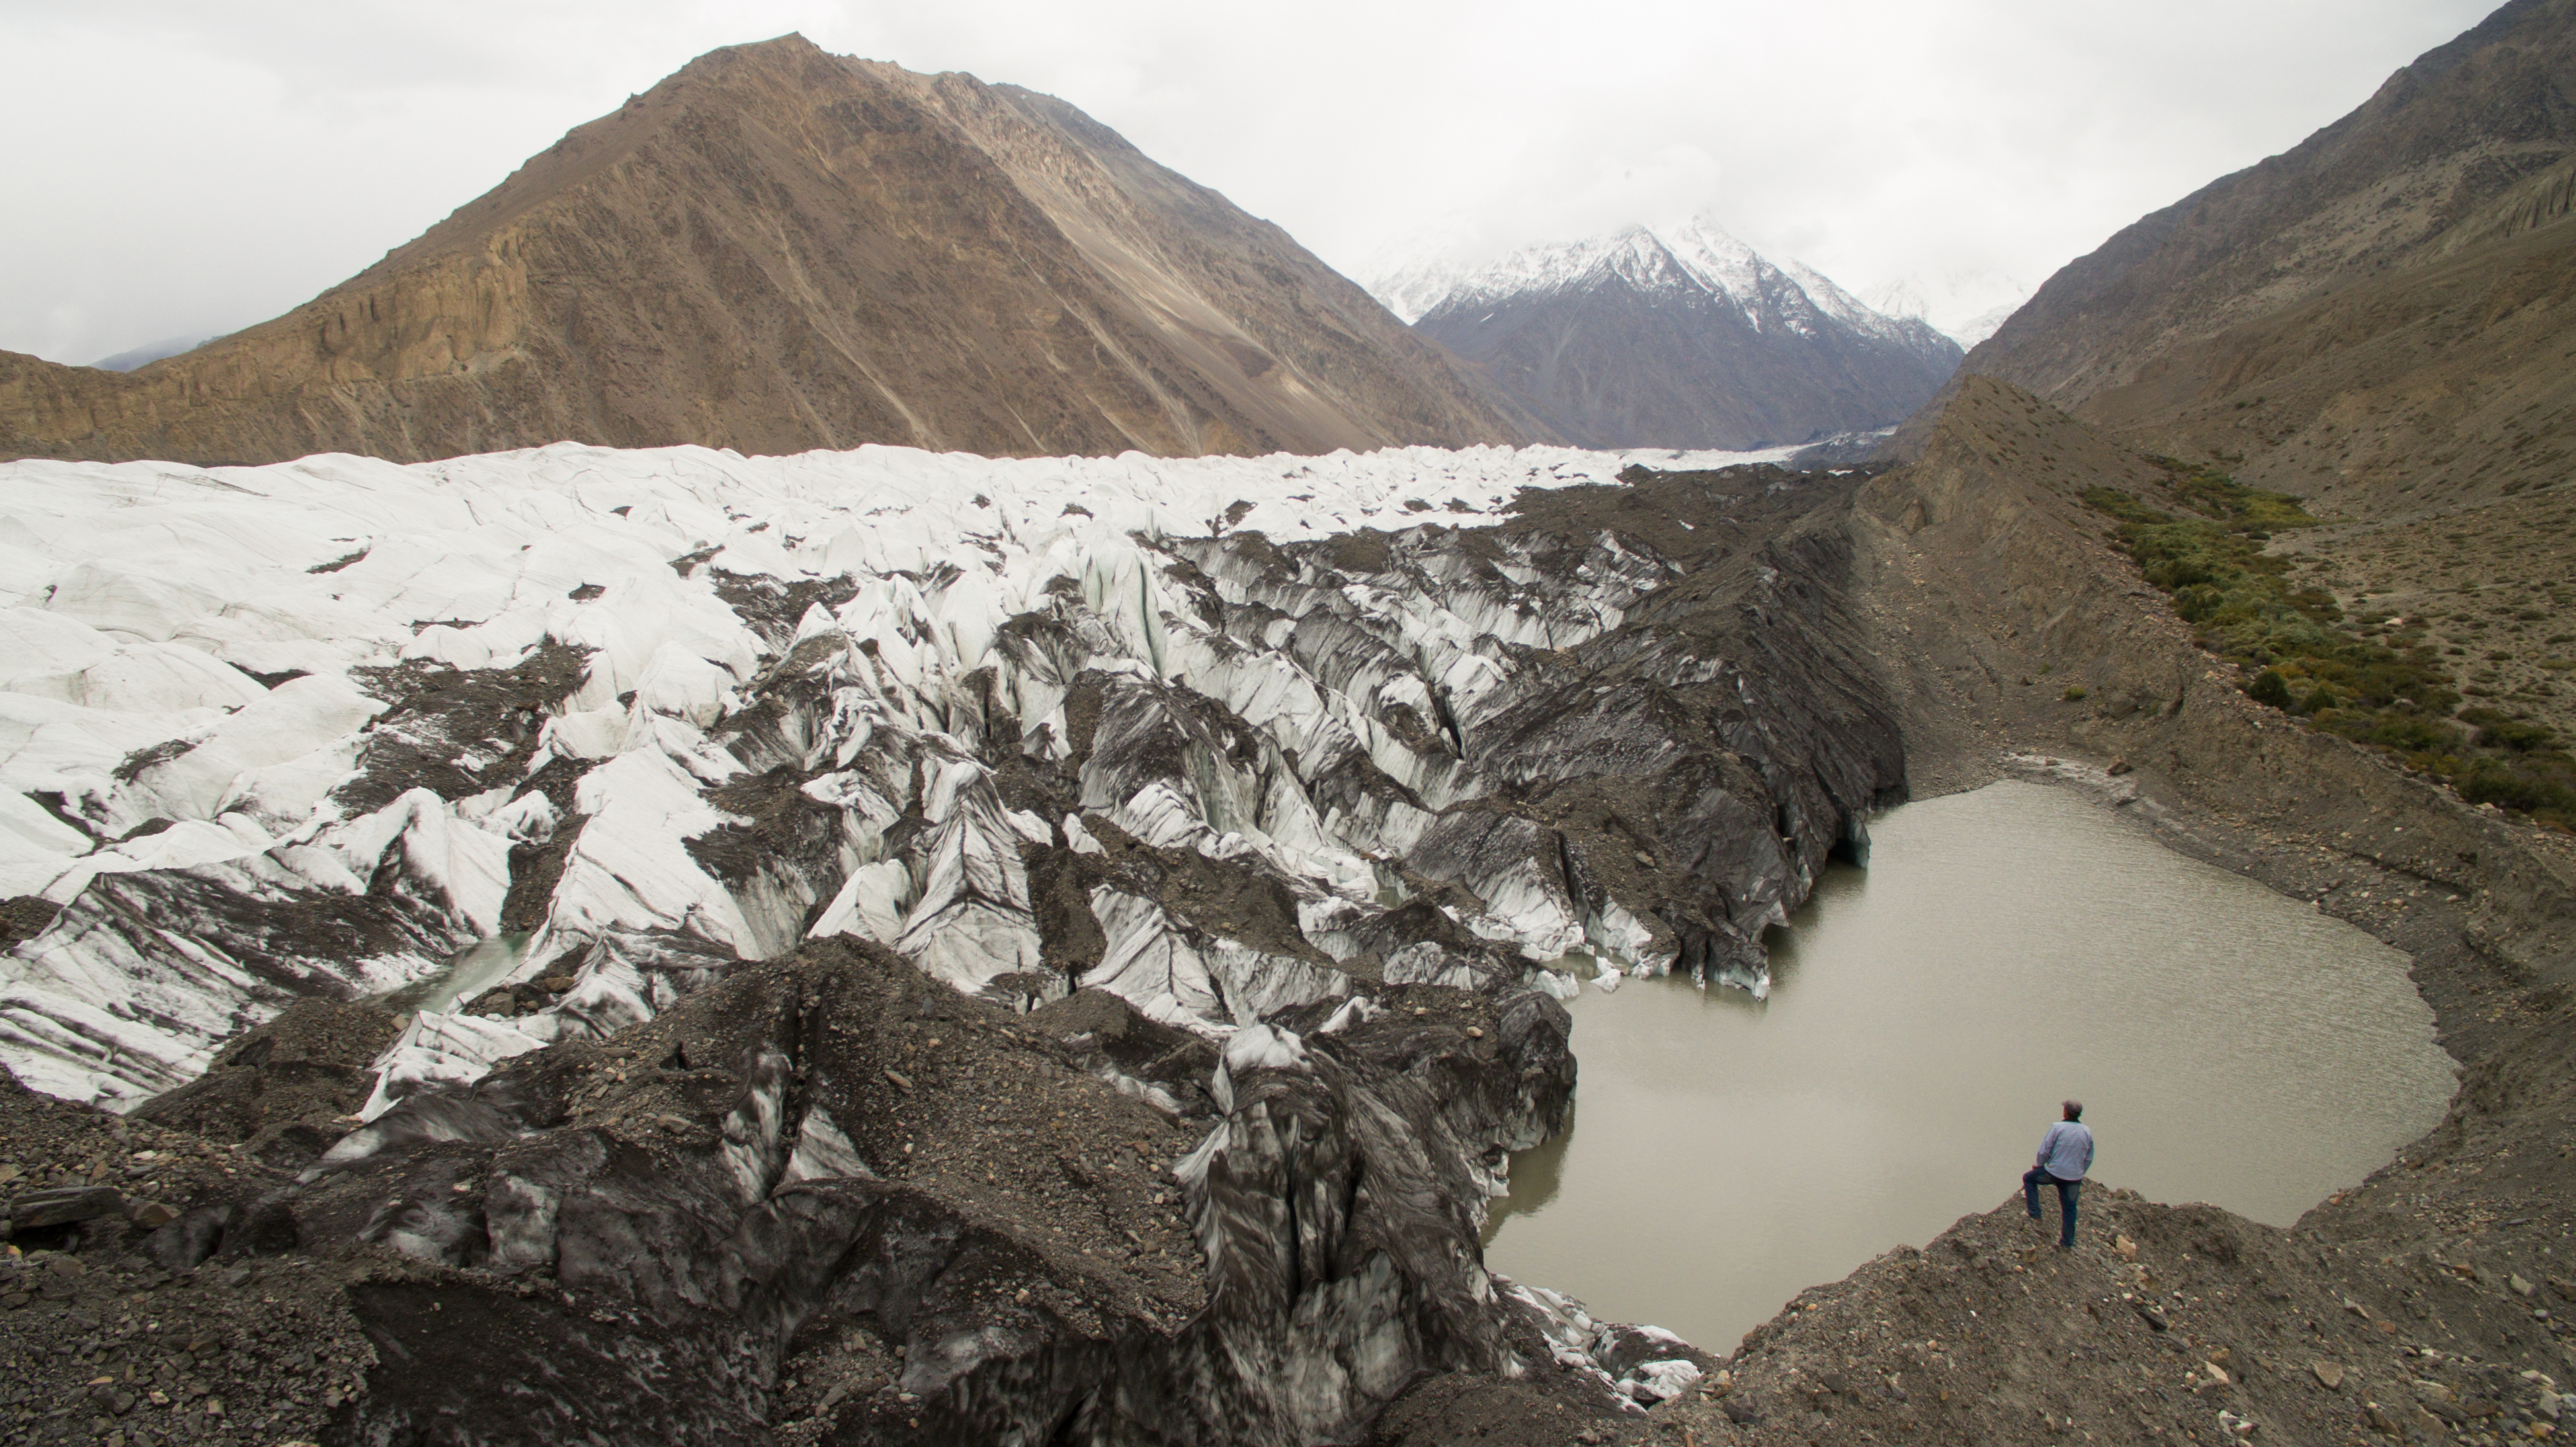 A view of Khurdopin glacier shot during the monitoring visit